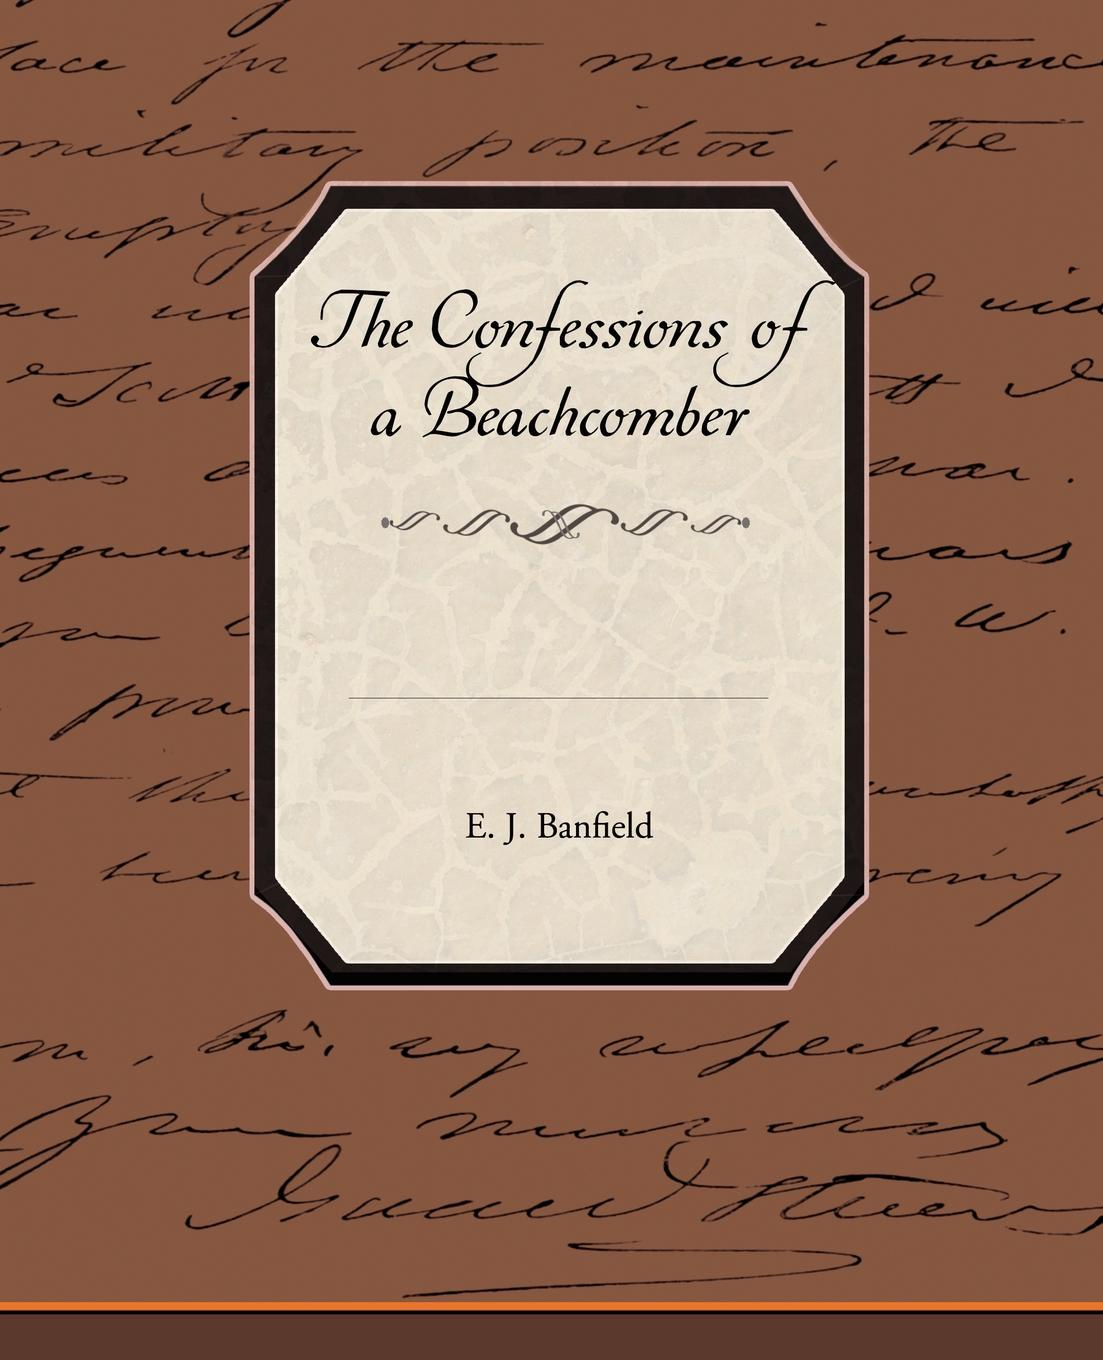 E. J. Banfield The Confessions of a Beachcomber l g whitney confessions of a vampire